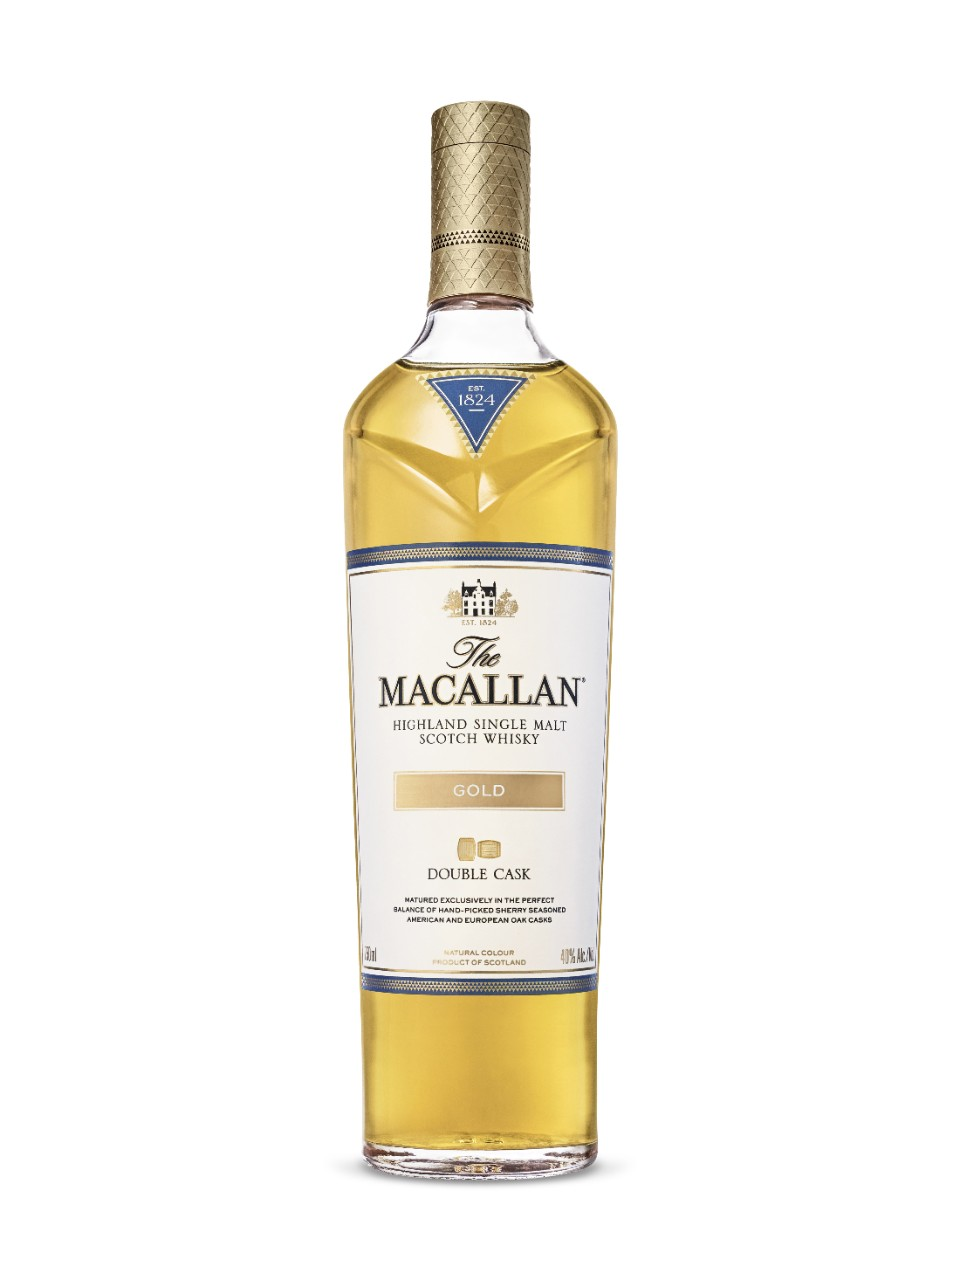 Image for The Macallan Gold Highland Single Malt Scotch Whisky from LCBO